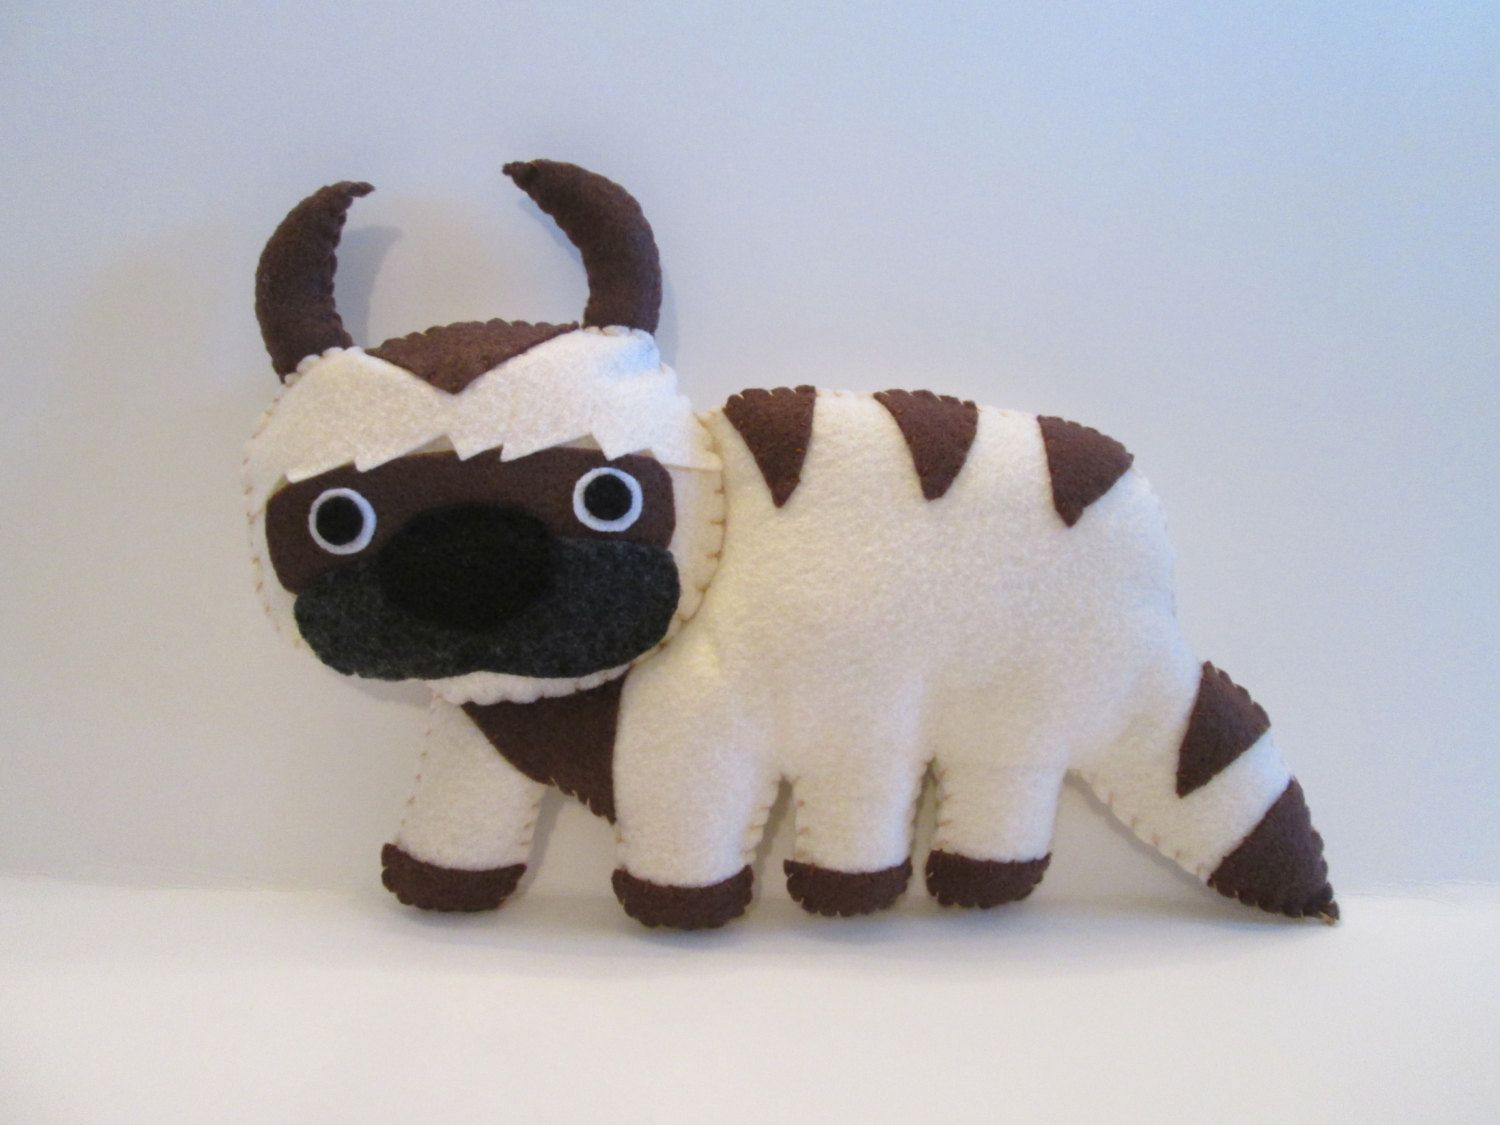 Appa Plush Inspired By Avatar The Last Airbender Flying Bison Plushie 1600 USD